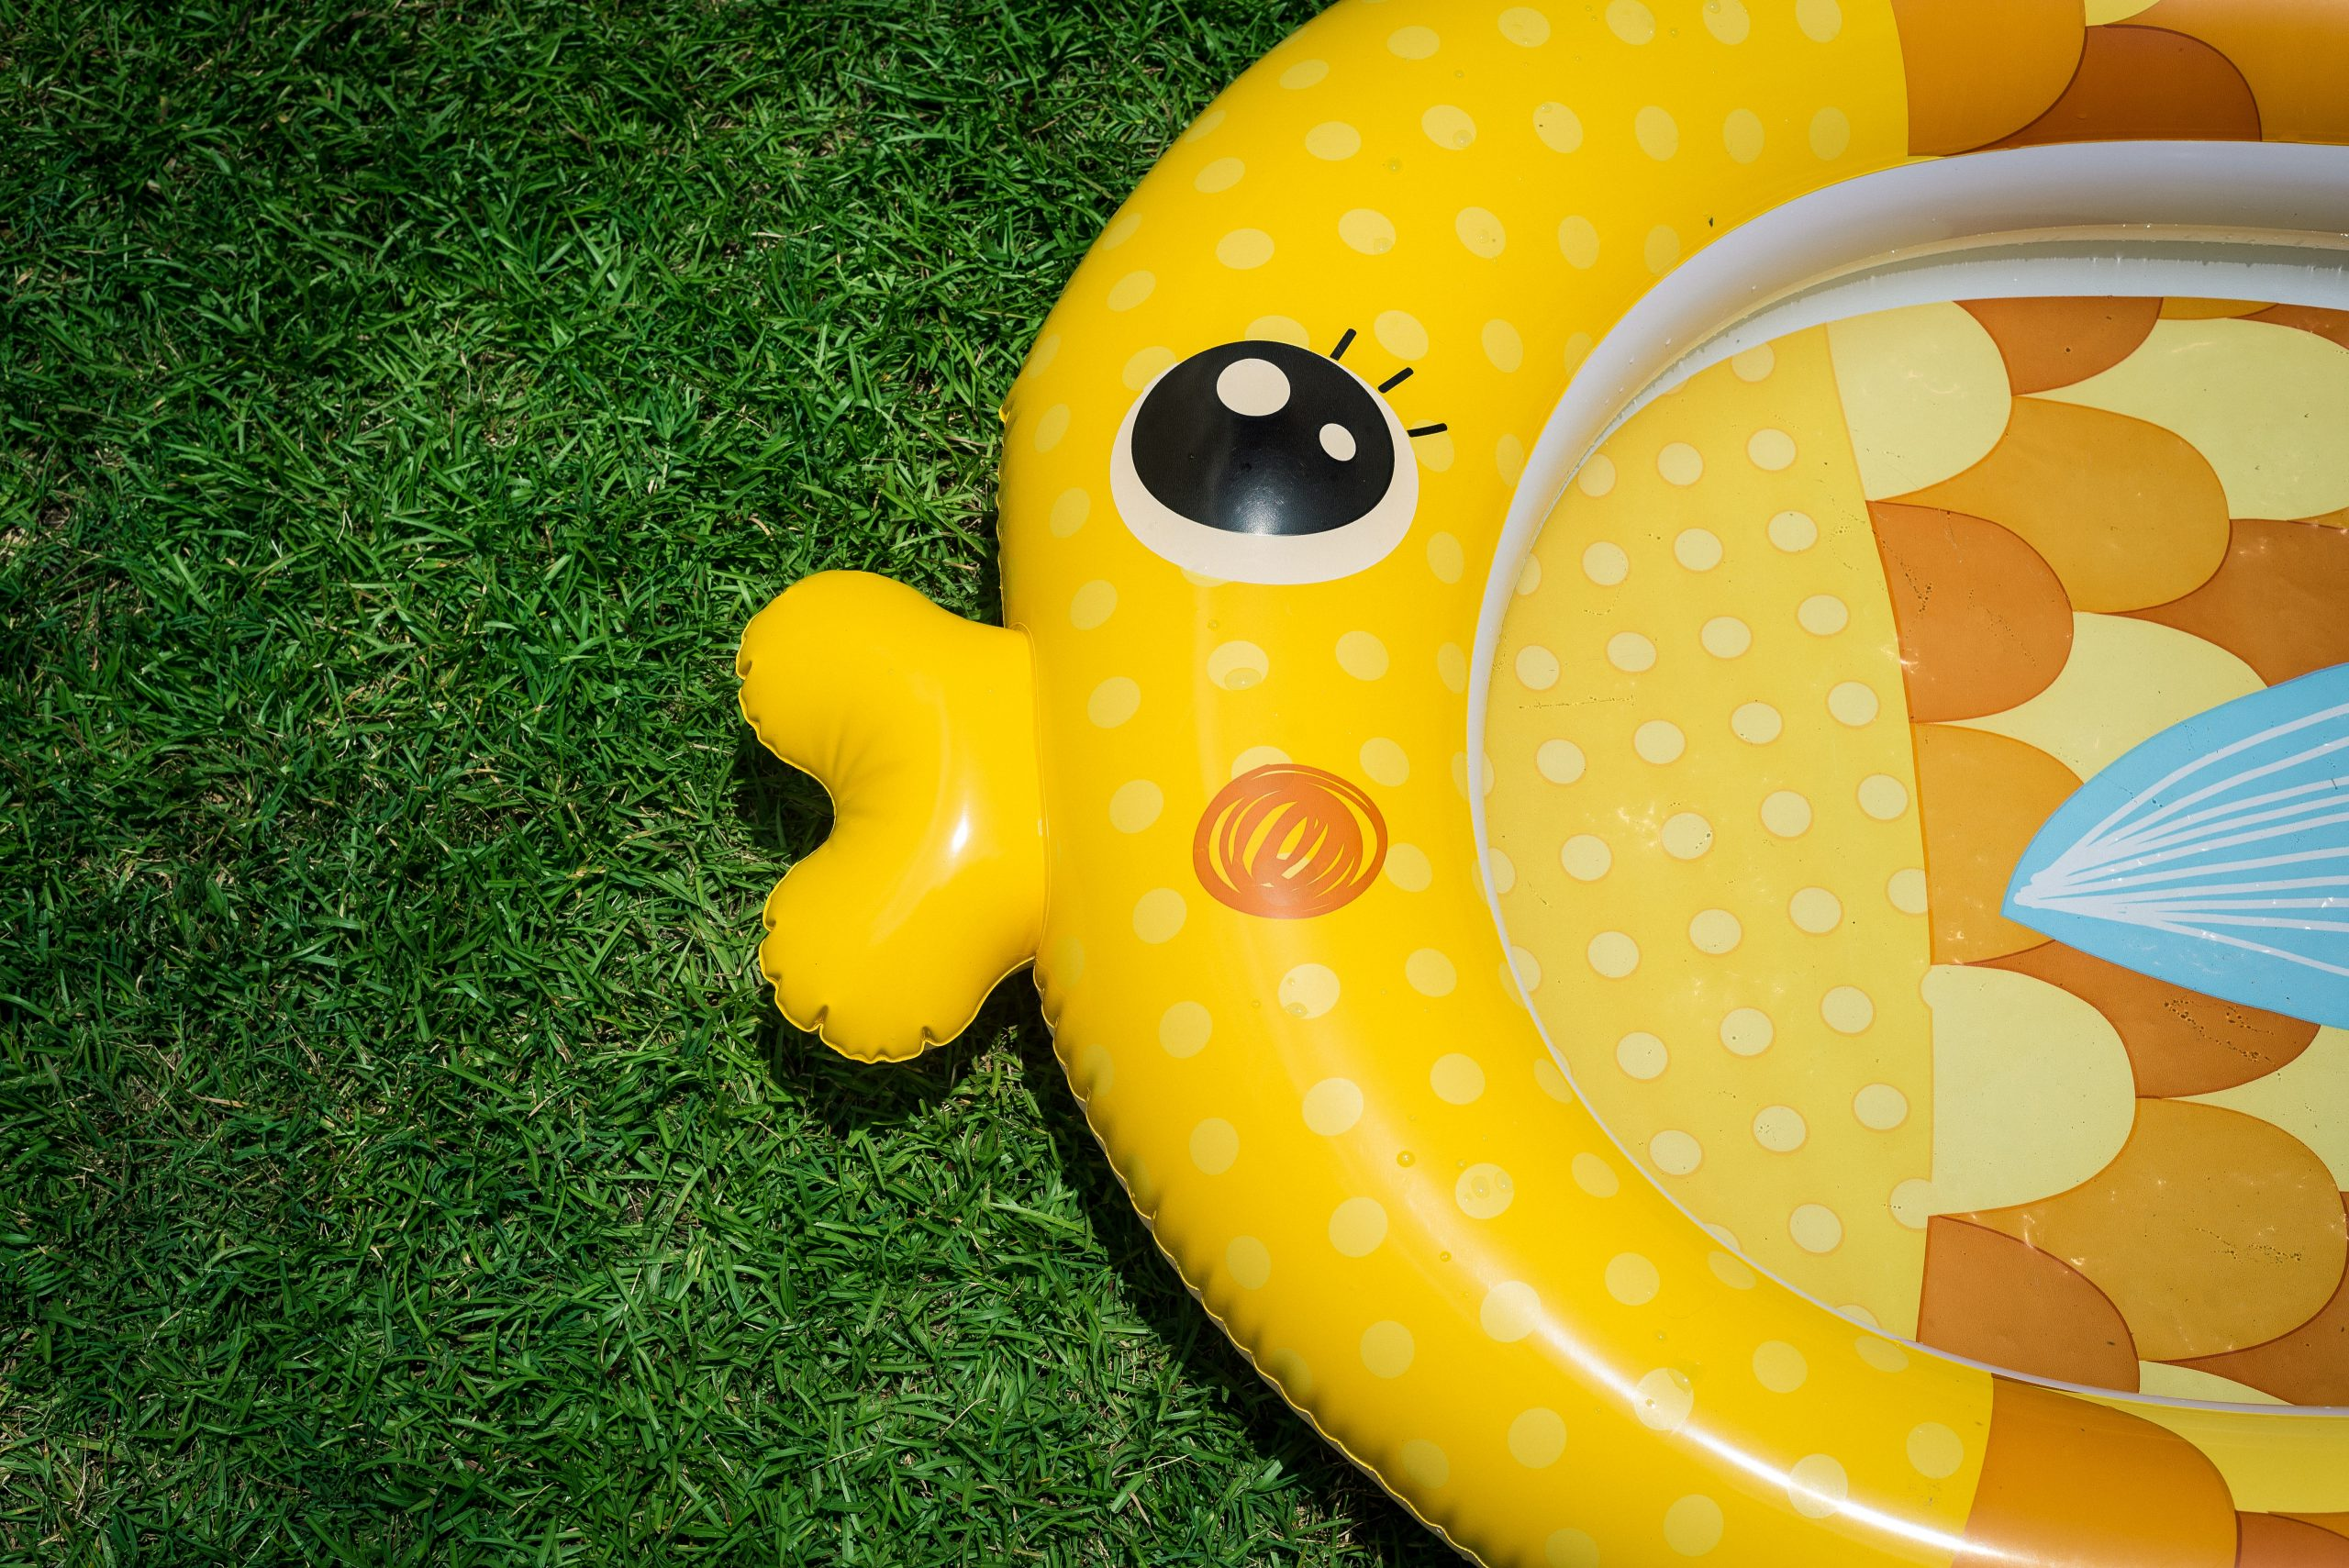 Baby Pool - Best Outdoor Toys for 3 and 4 year olds